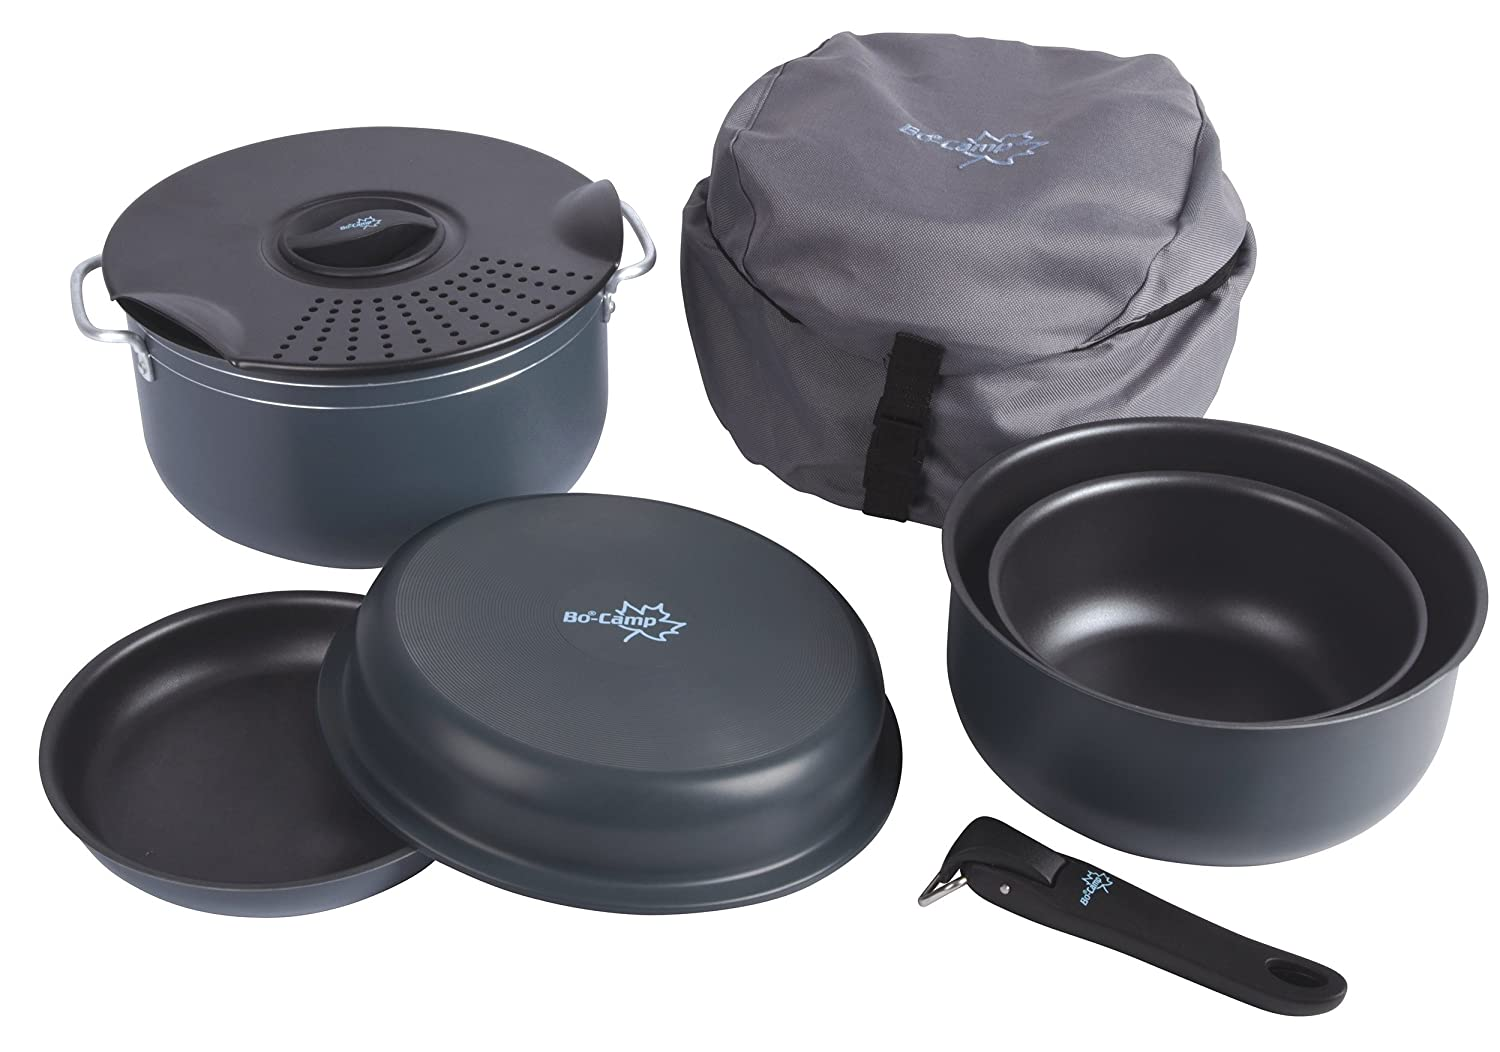 Bo-Camp Camping Cookware Set 7 Pieces Black 1.1/2.5/4.4 l 2300350